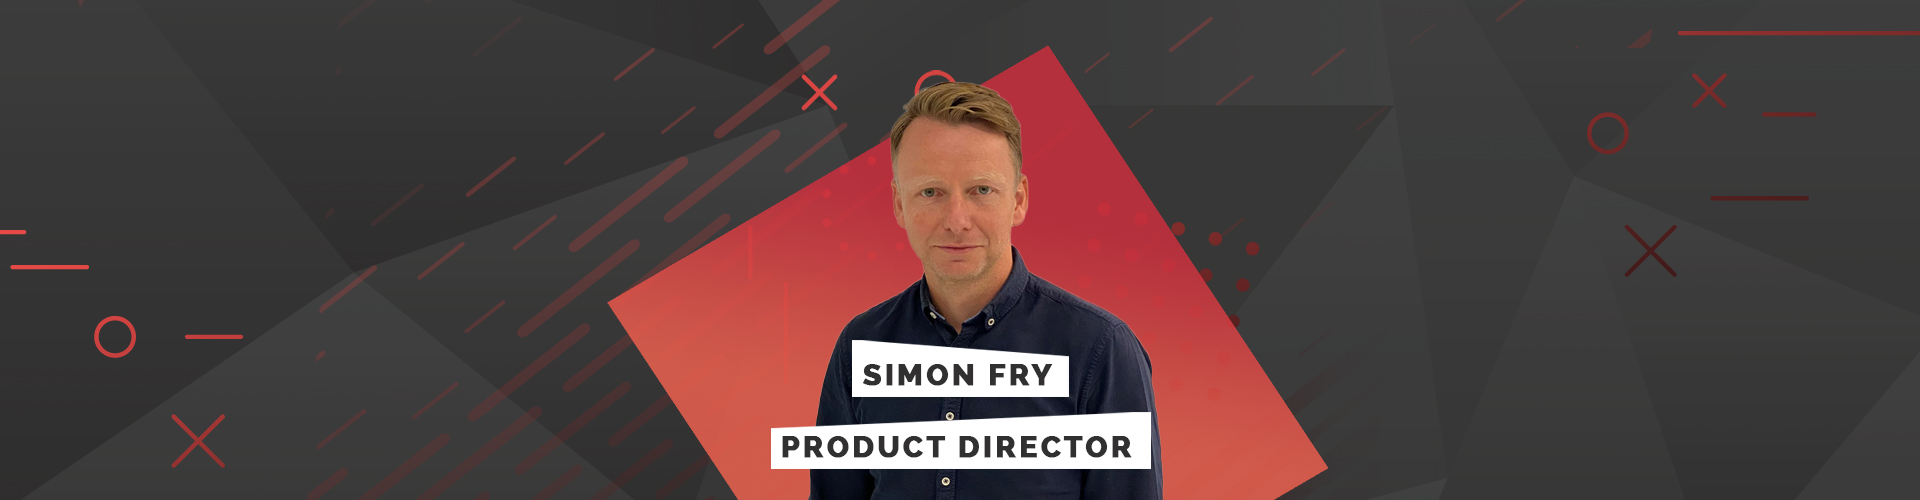 Image of PageSuite Welcomes Simon Fry